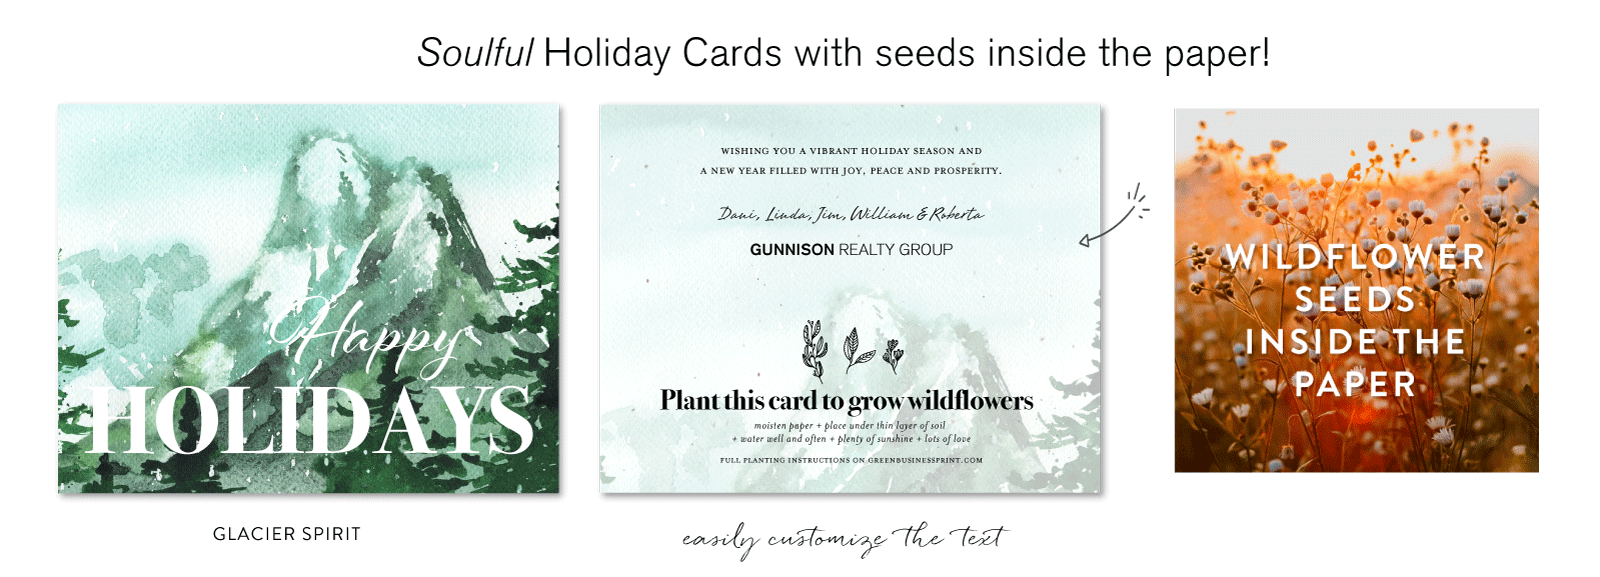 Seeded Corporate Holiday Cards Glacier